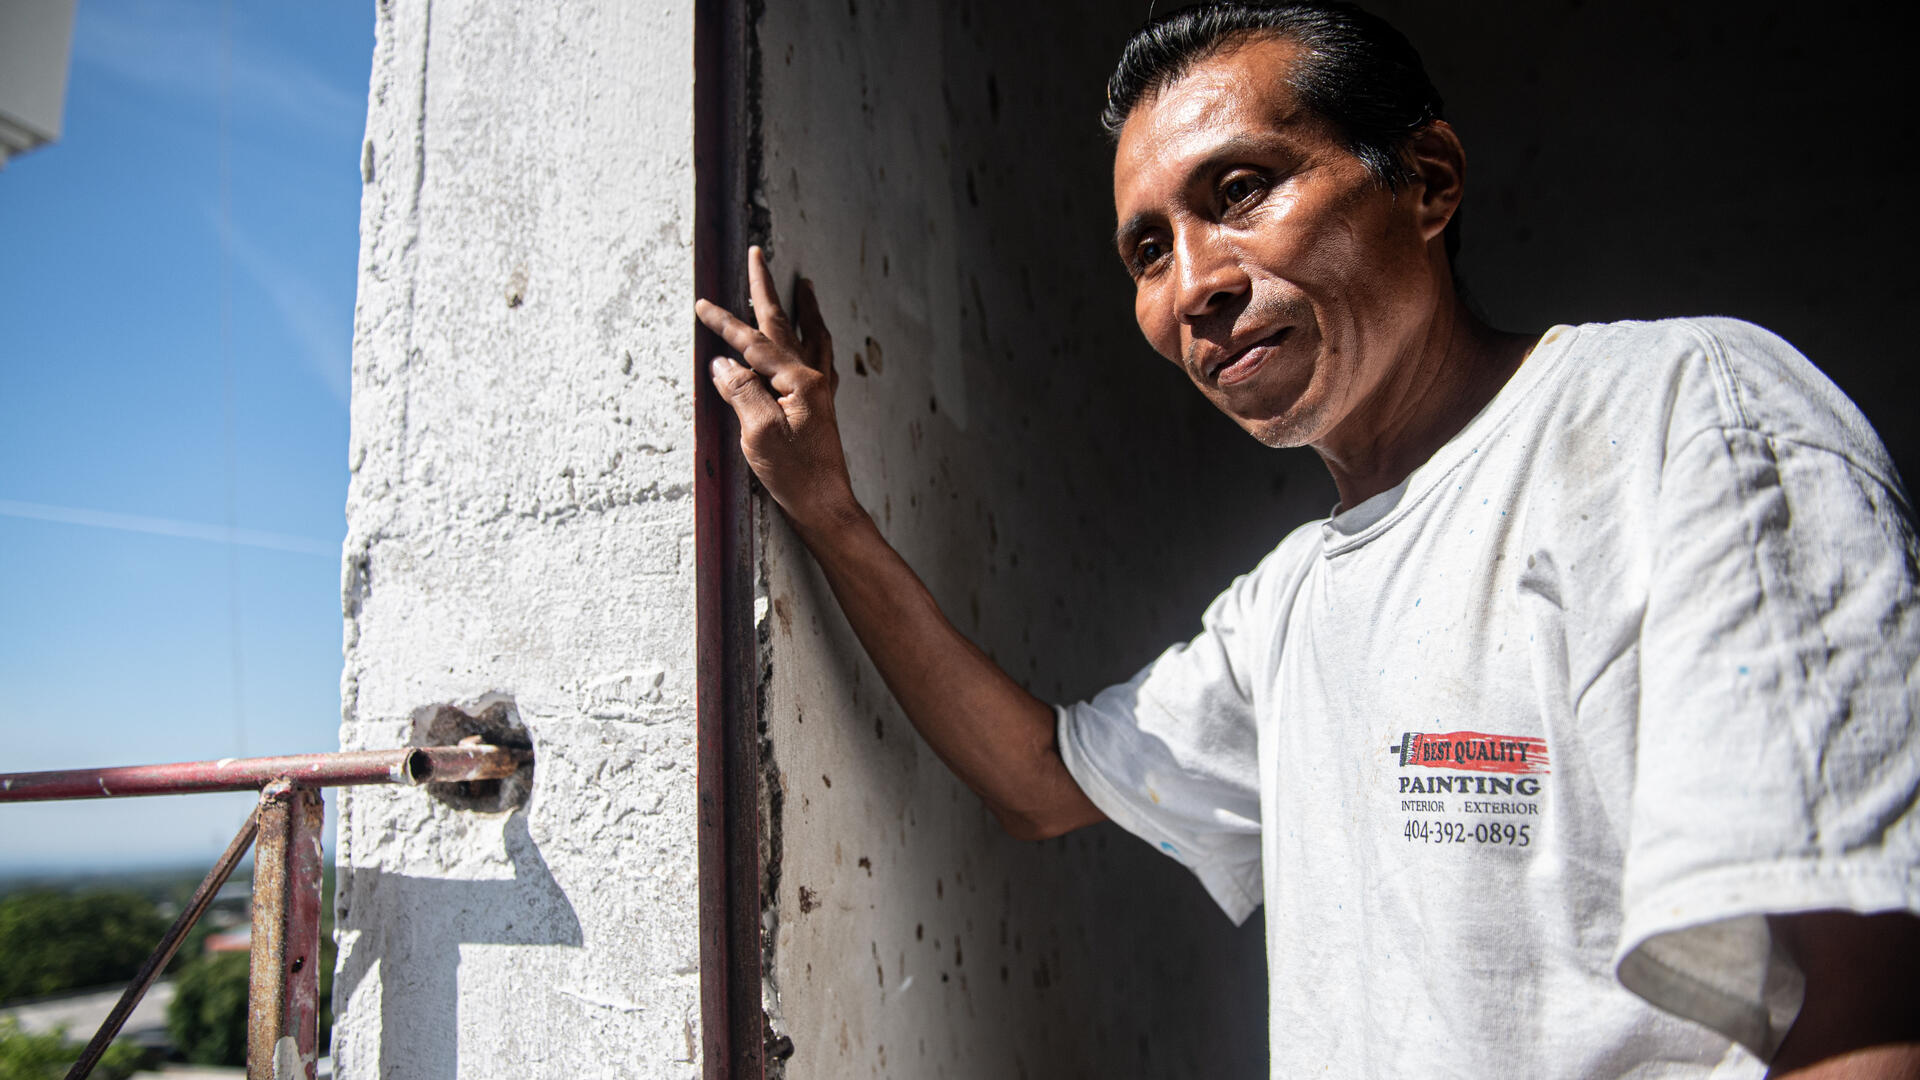 Reynaldo, a Salvadoran man who works as a painter, stands in the doorway of a church in El Salvador.